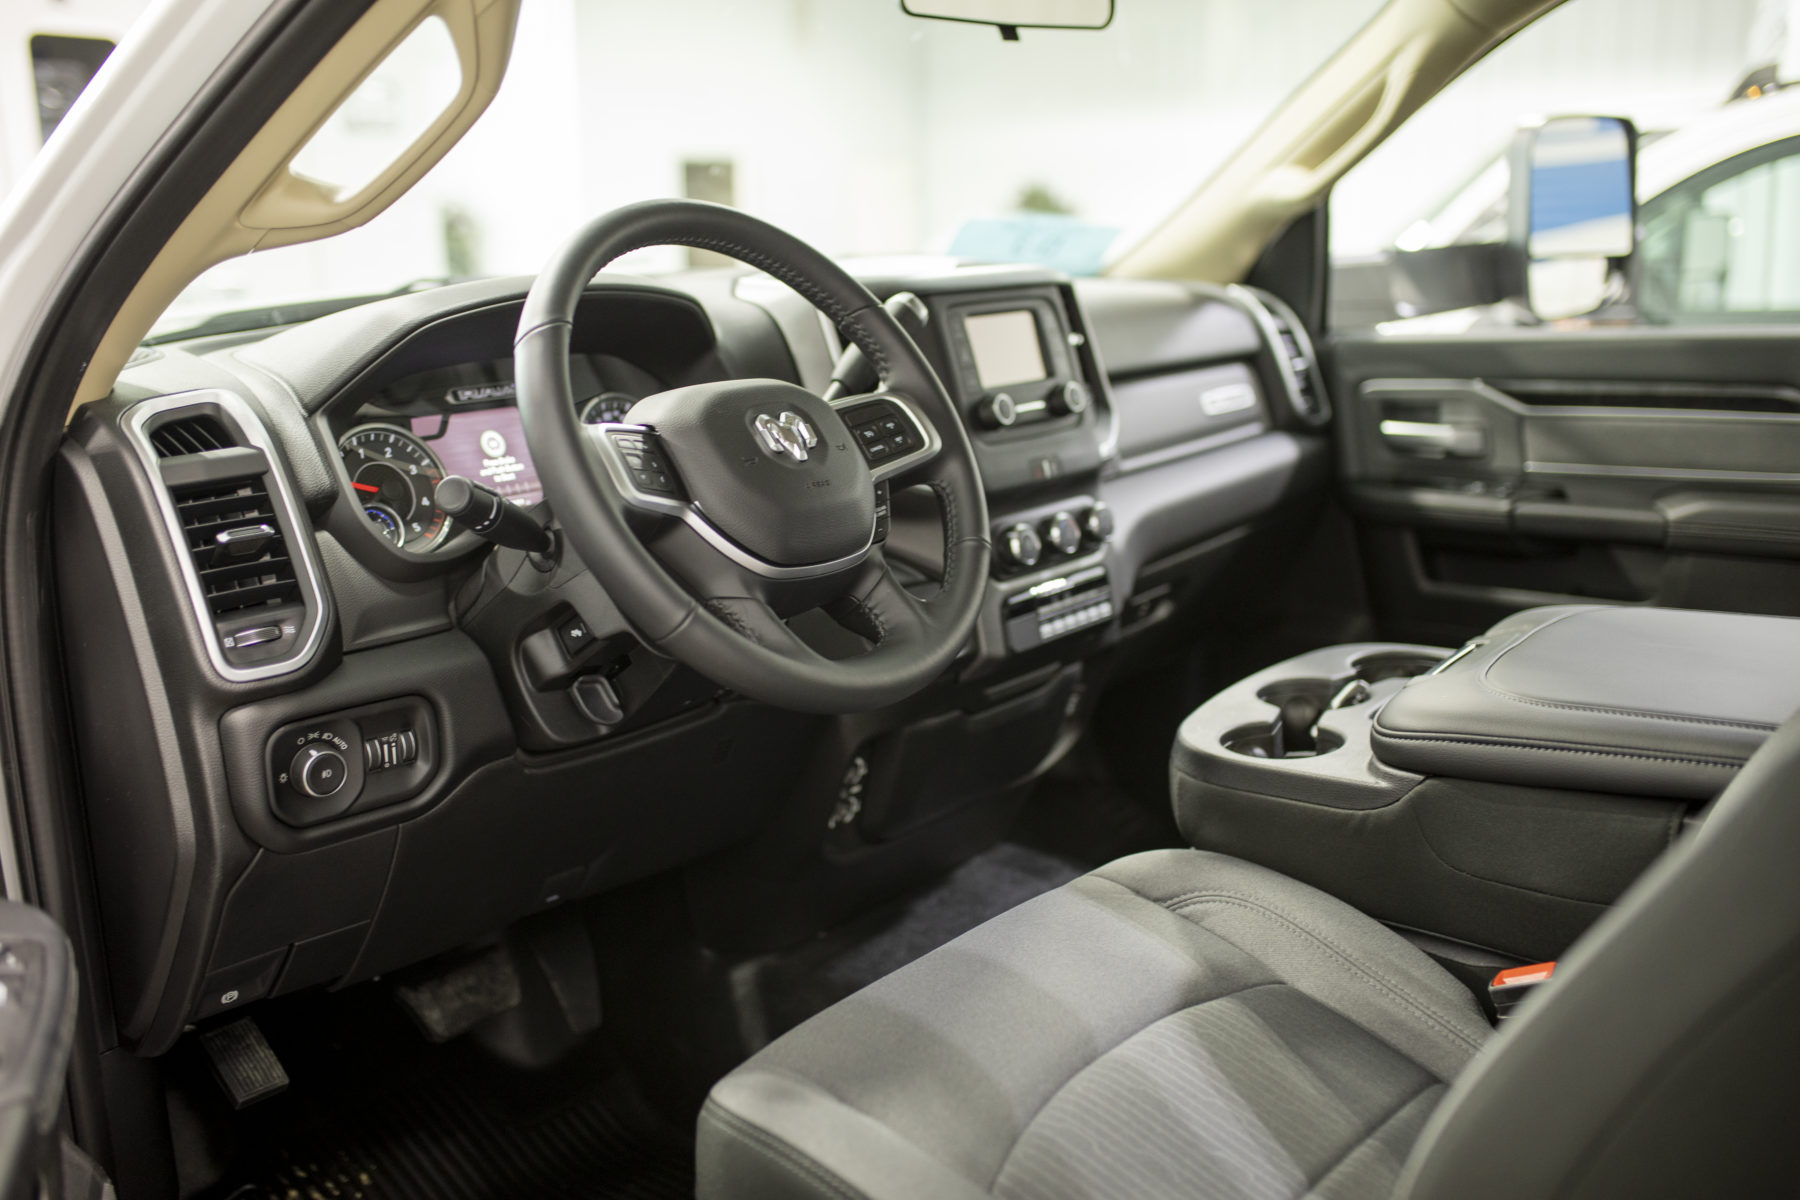 2019 Ram 4500 4x4 Heavy Duty Ambulance For Sale – Picture 2